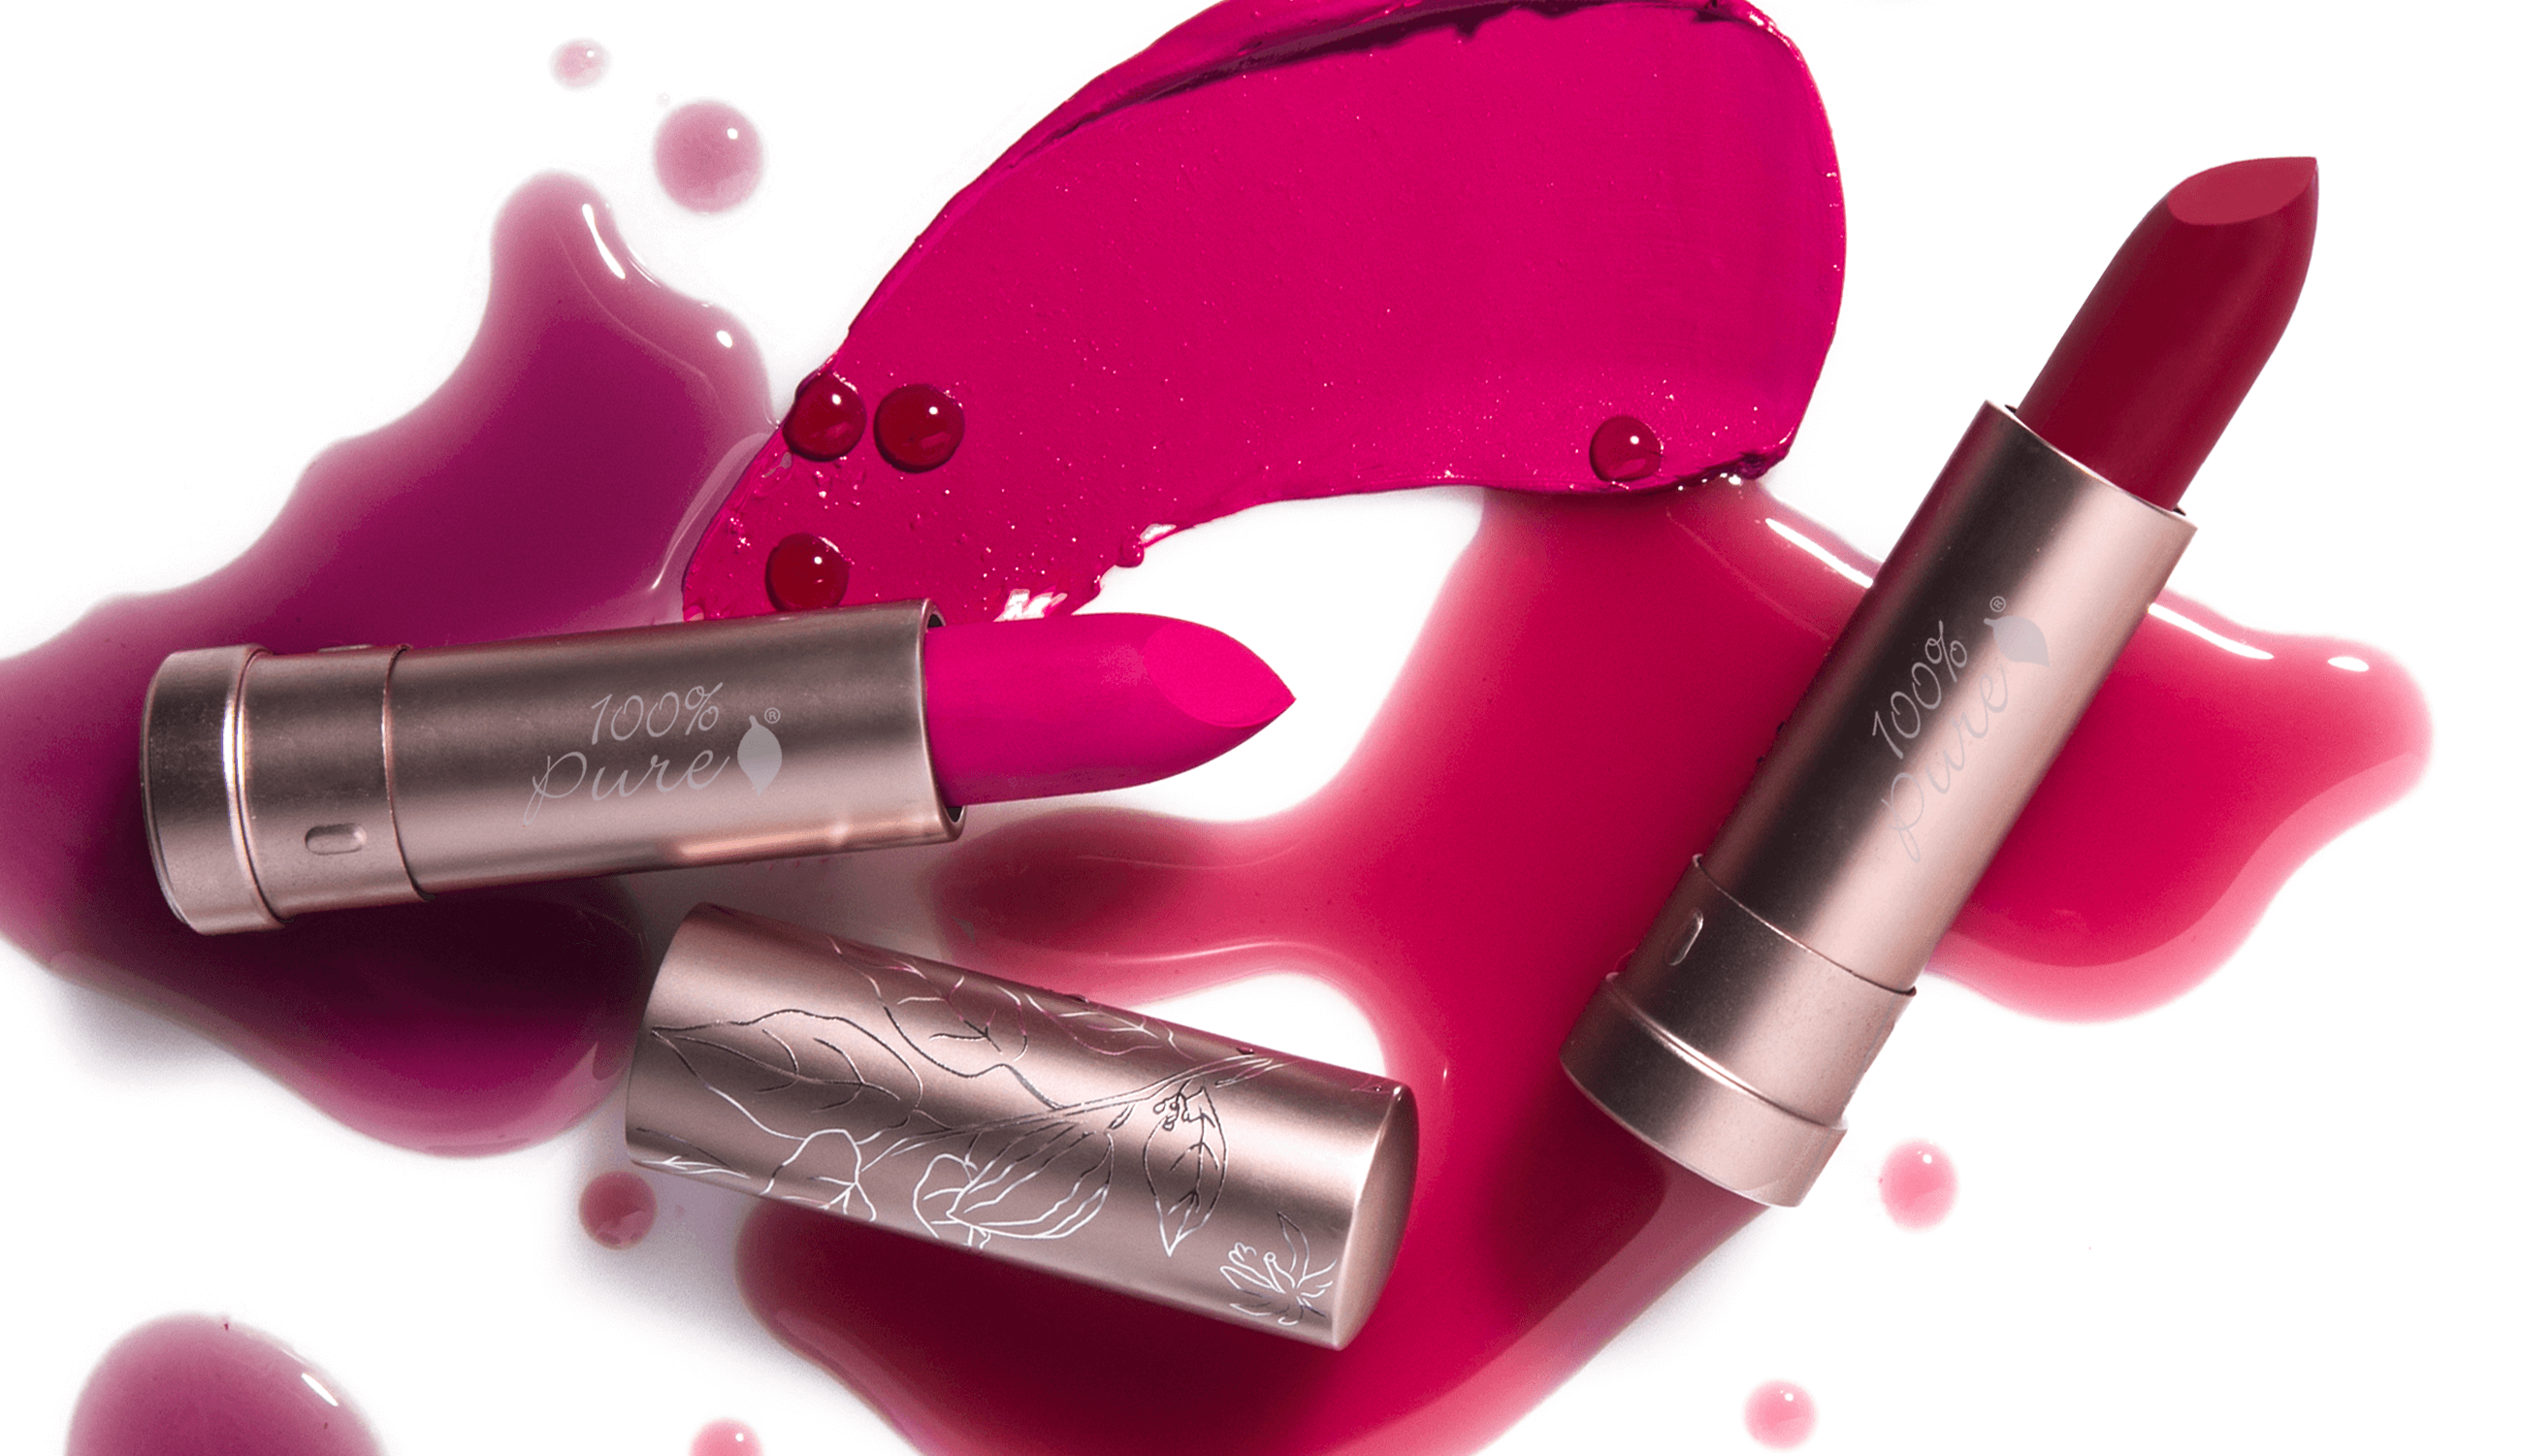 100% PURE Juicy Matte Lipsticks